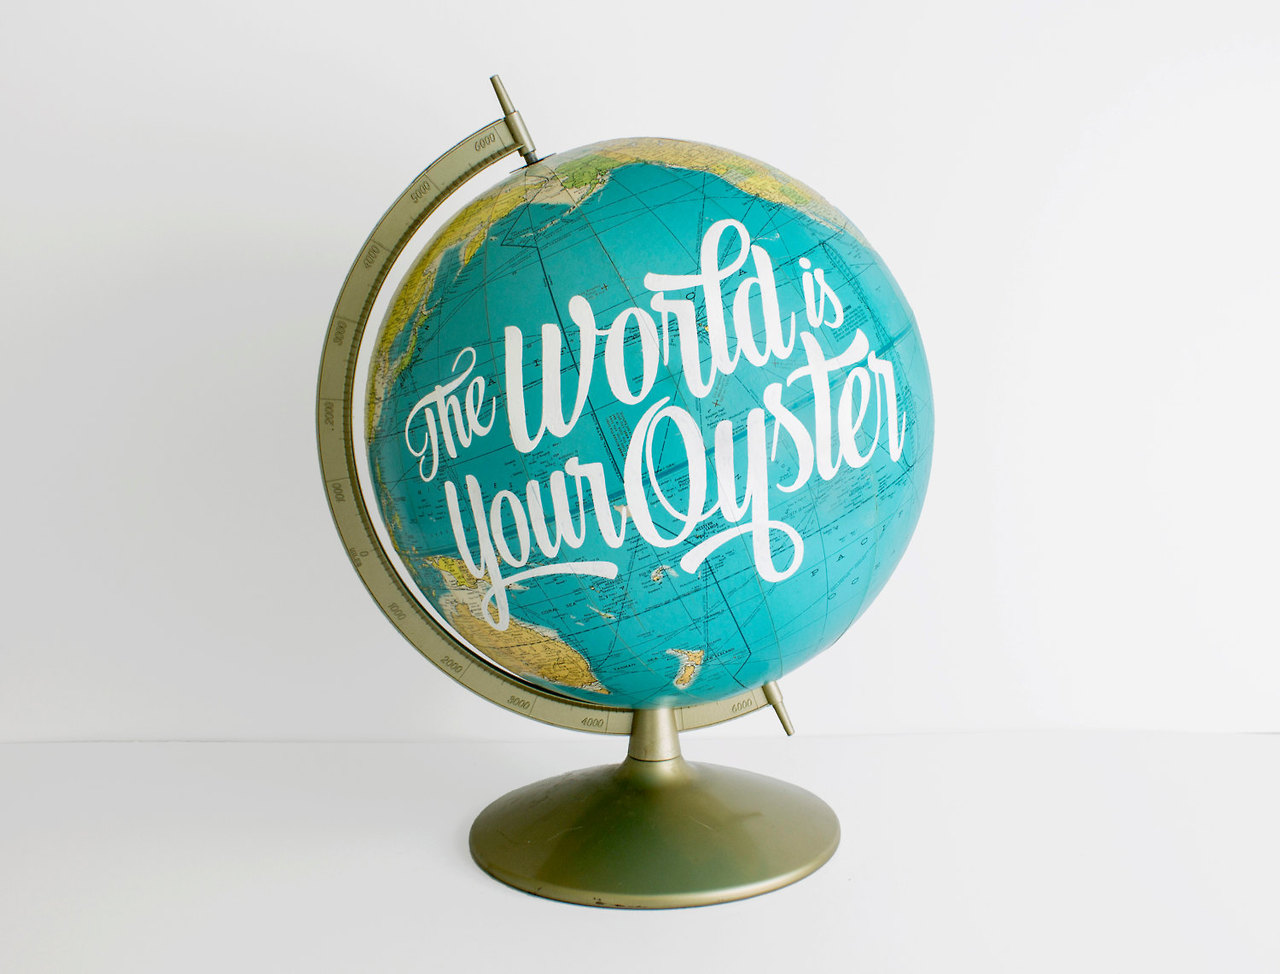 Vintage Globes With Hand-Lettered Quotes